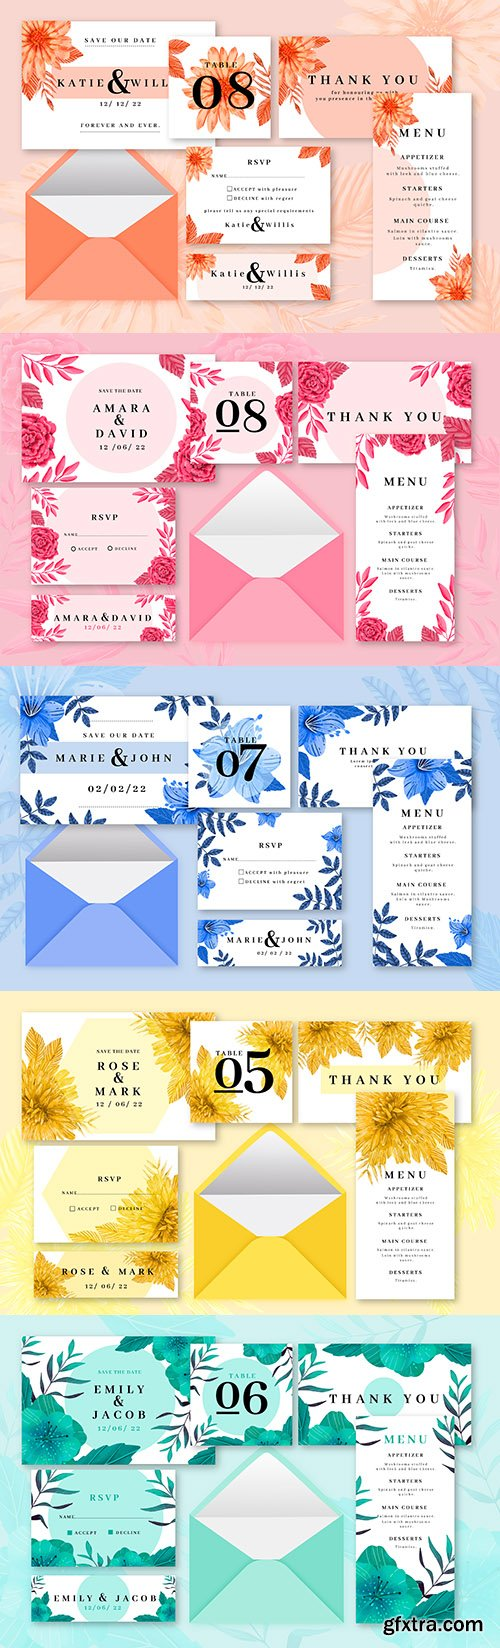 Colored wedding stationery design template